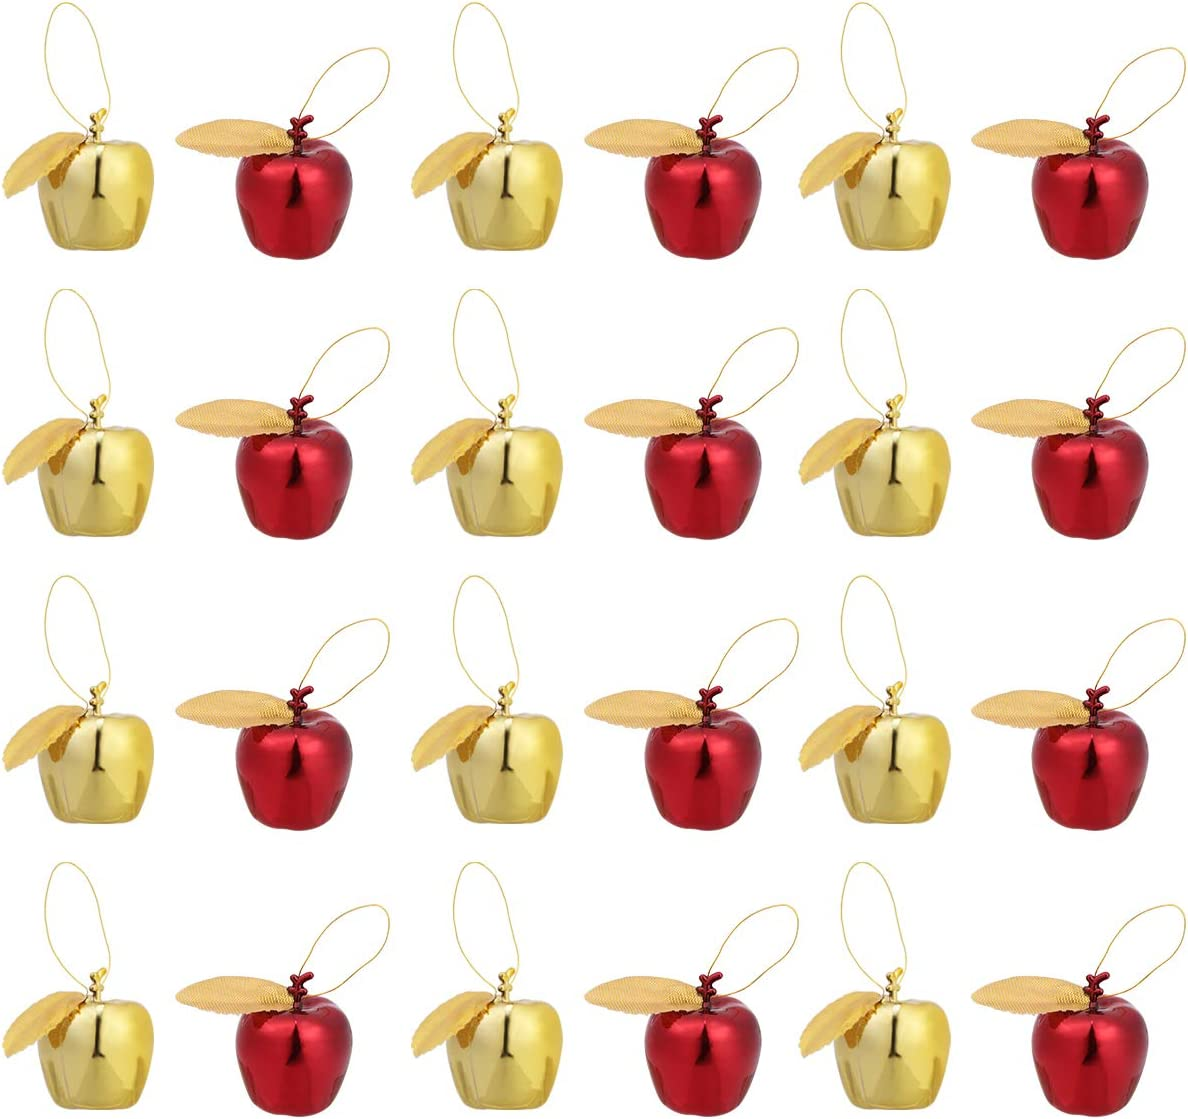 Amosfun 24pcs Christmas Hanging Ornaments Plastic Simulation Apple Hanging Pendant for Christmas Tree Decorations (Golden Red)